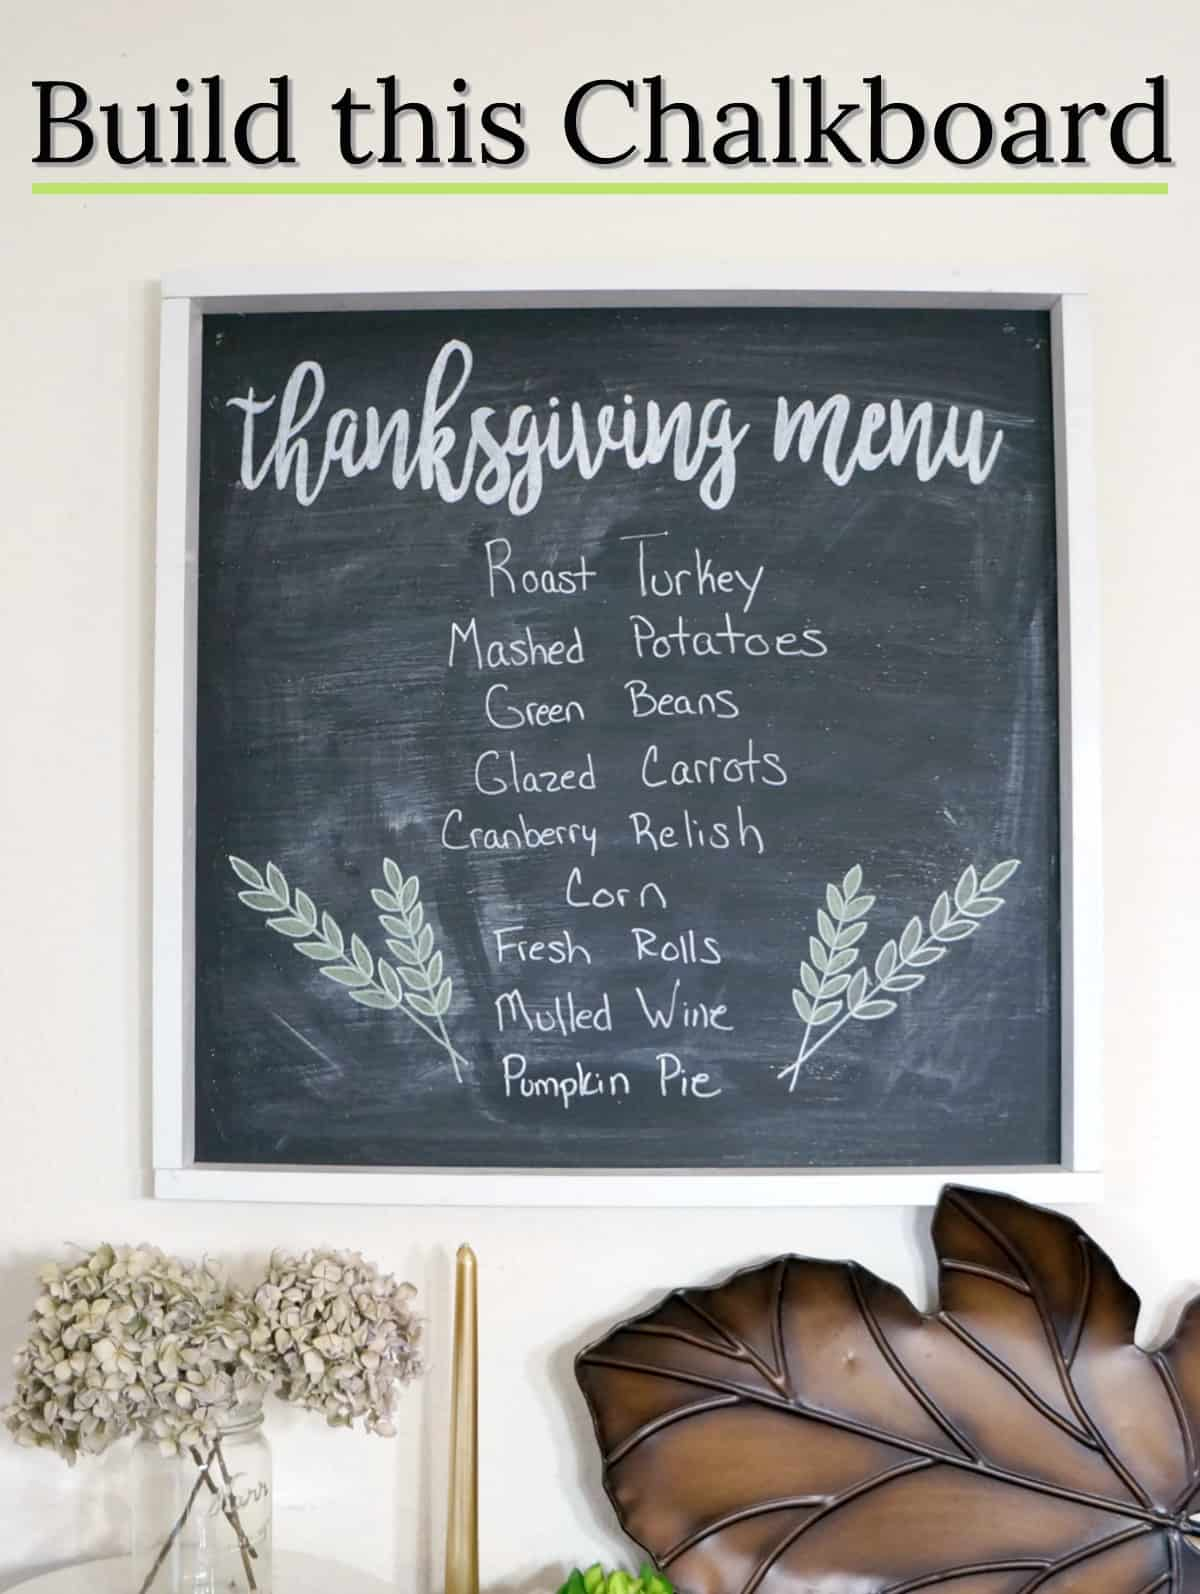 Full tutorial plus video on how to build this simple DIY chalkboard. Plus tips on how to prepare your home for Thanksgiving